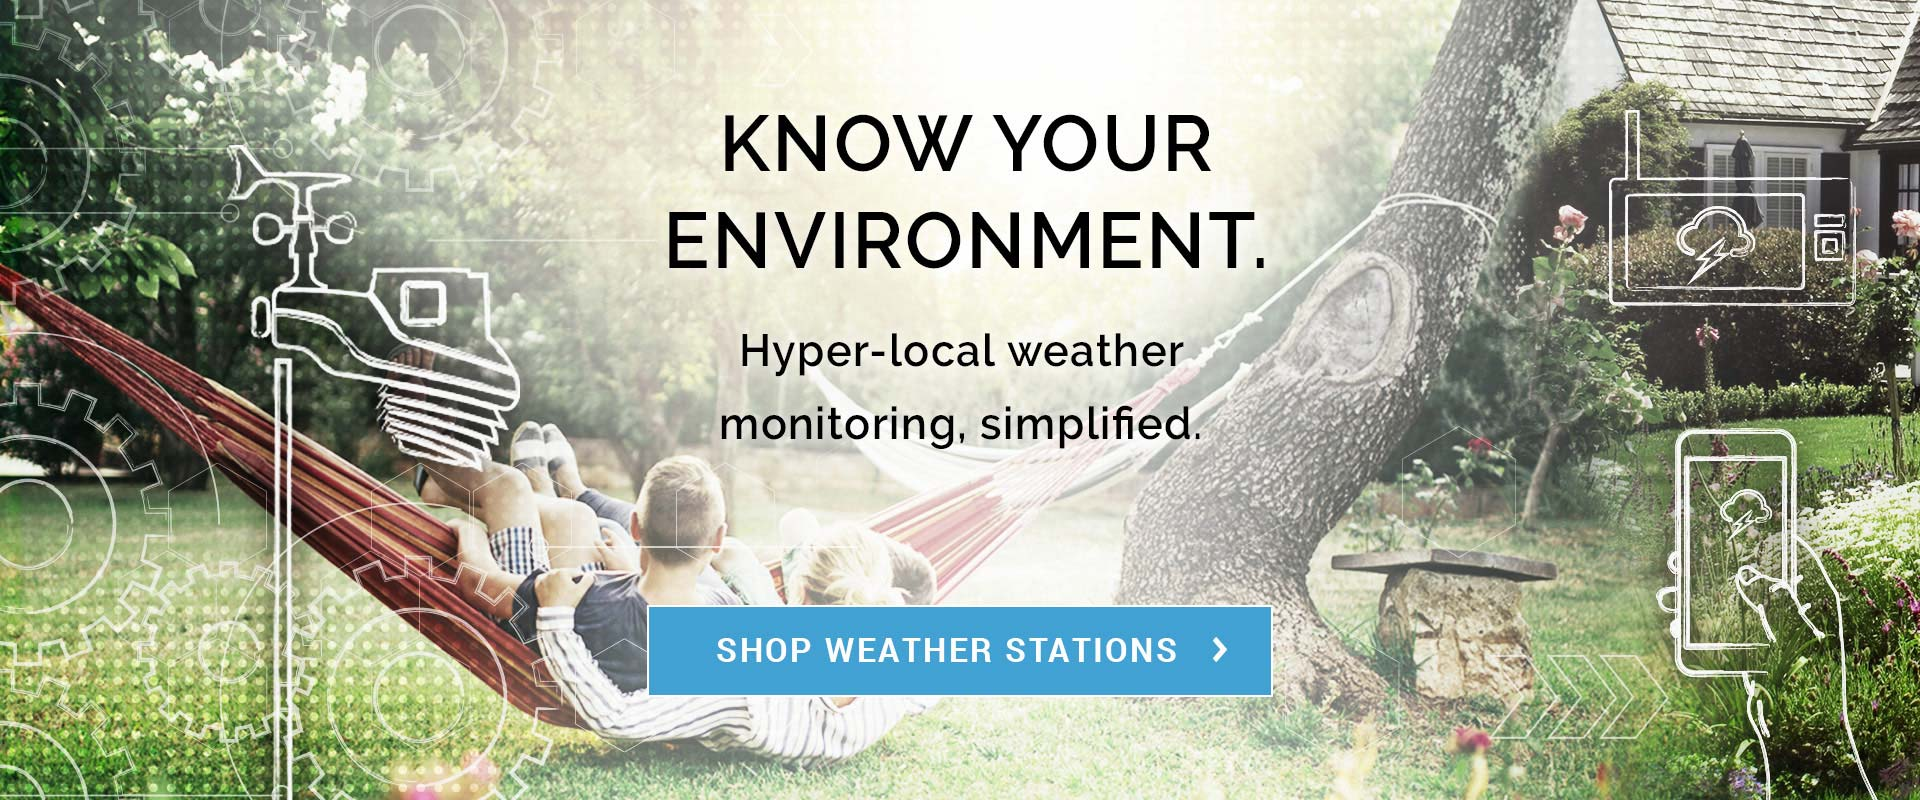 Know Your Environment - Shop Weather Stations